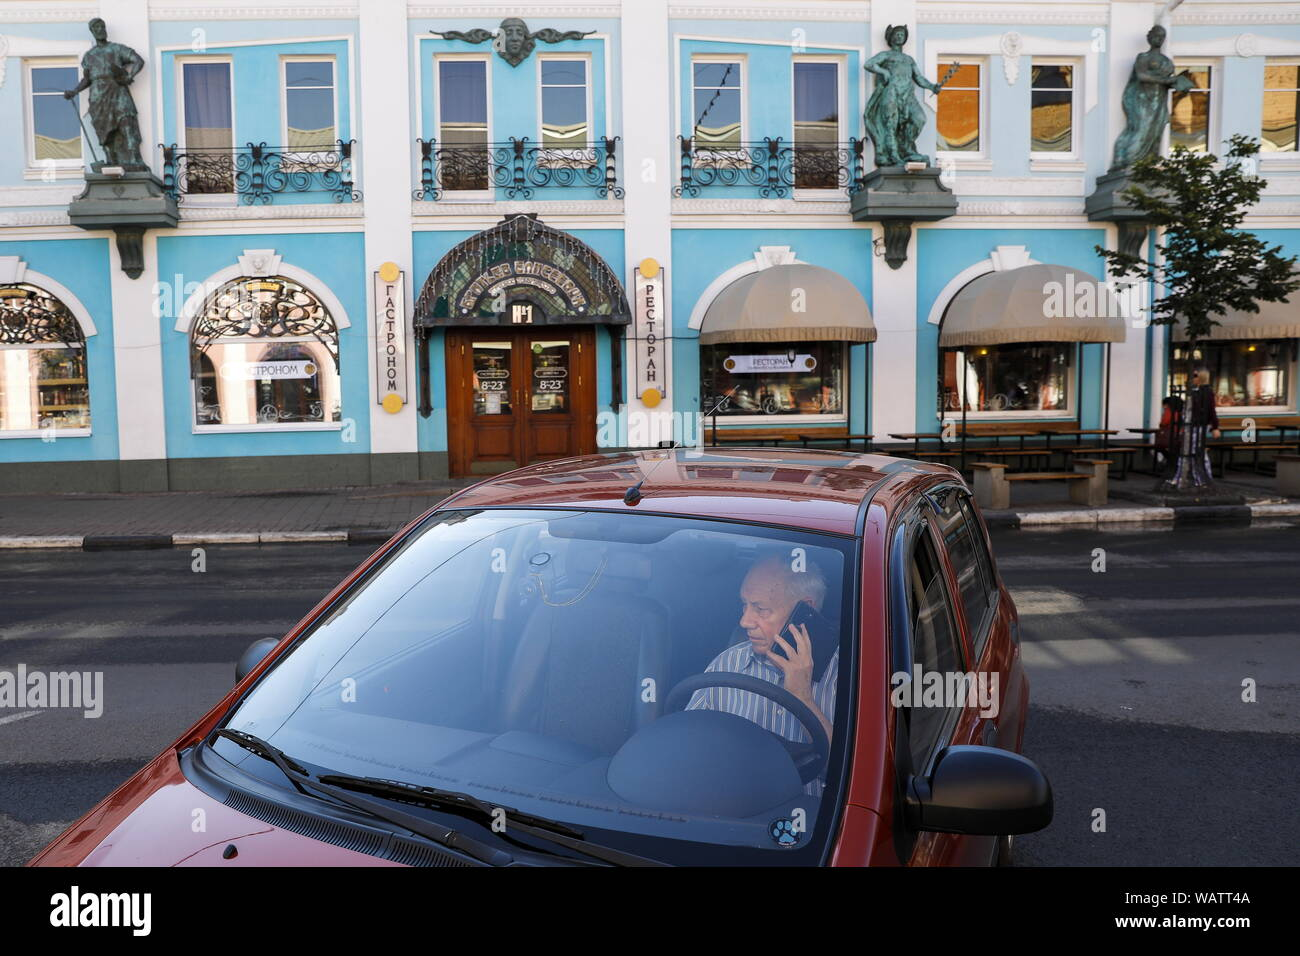 Yaroslavl, Russia. 20th Aug, 2019. YAROSLAVL, RUSSIA - AUGUST 20, 2019: A car parked near the grocery store Supplier of the Imperial Household. Artyom Geodakyan/TASS Credit: ITAR-TASS News Agency/Alamy Live News Stock Photo